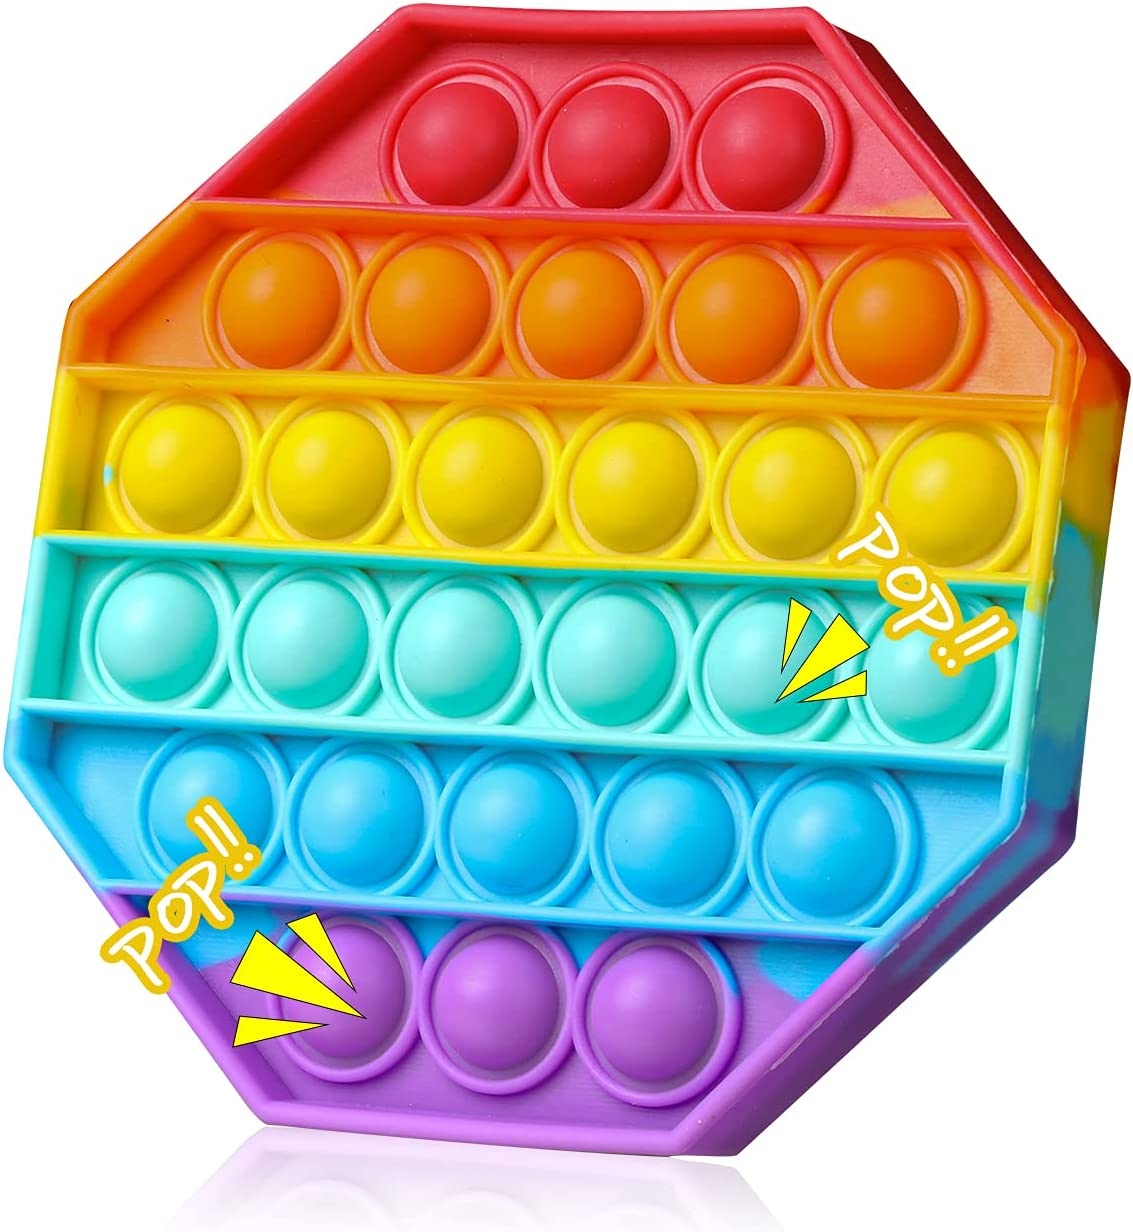 Pop Fidget Toy Rainbow Octagon, Push Bubble Sensory Squeeze Toy Gift Educational School Game Crafts for Kids Teen, Autism Stress Sensory Toy Reliever